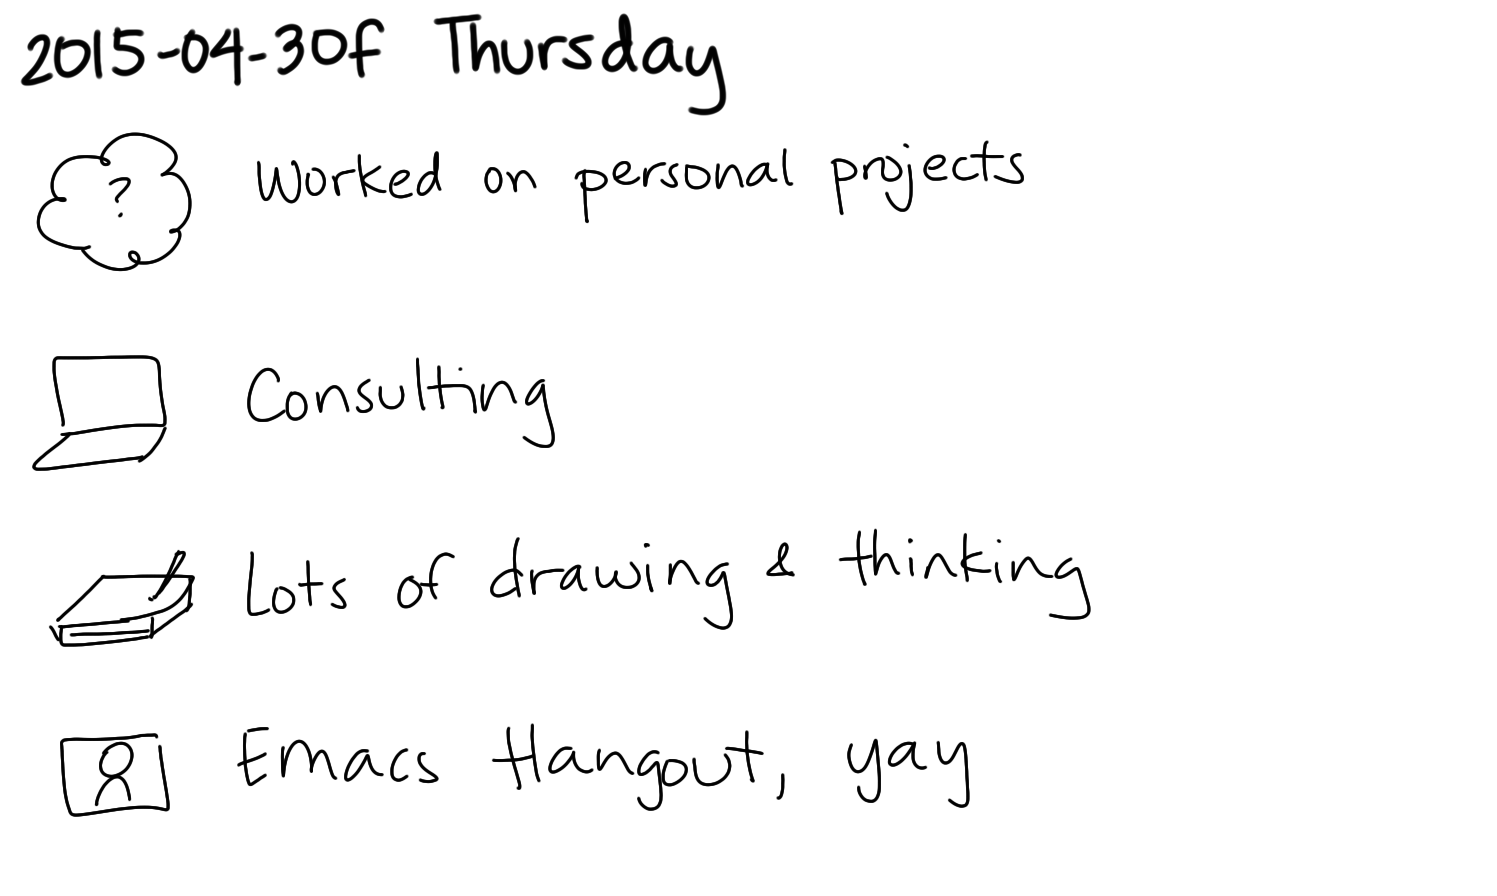 2015-04-30f Thursday -- index card #journal.png